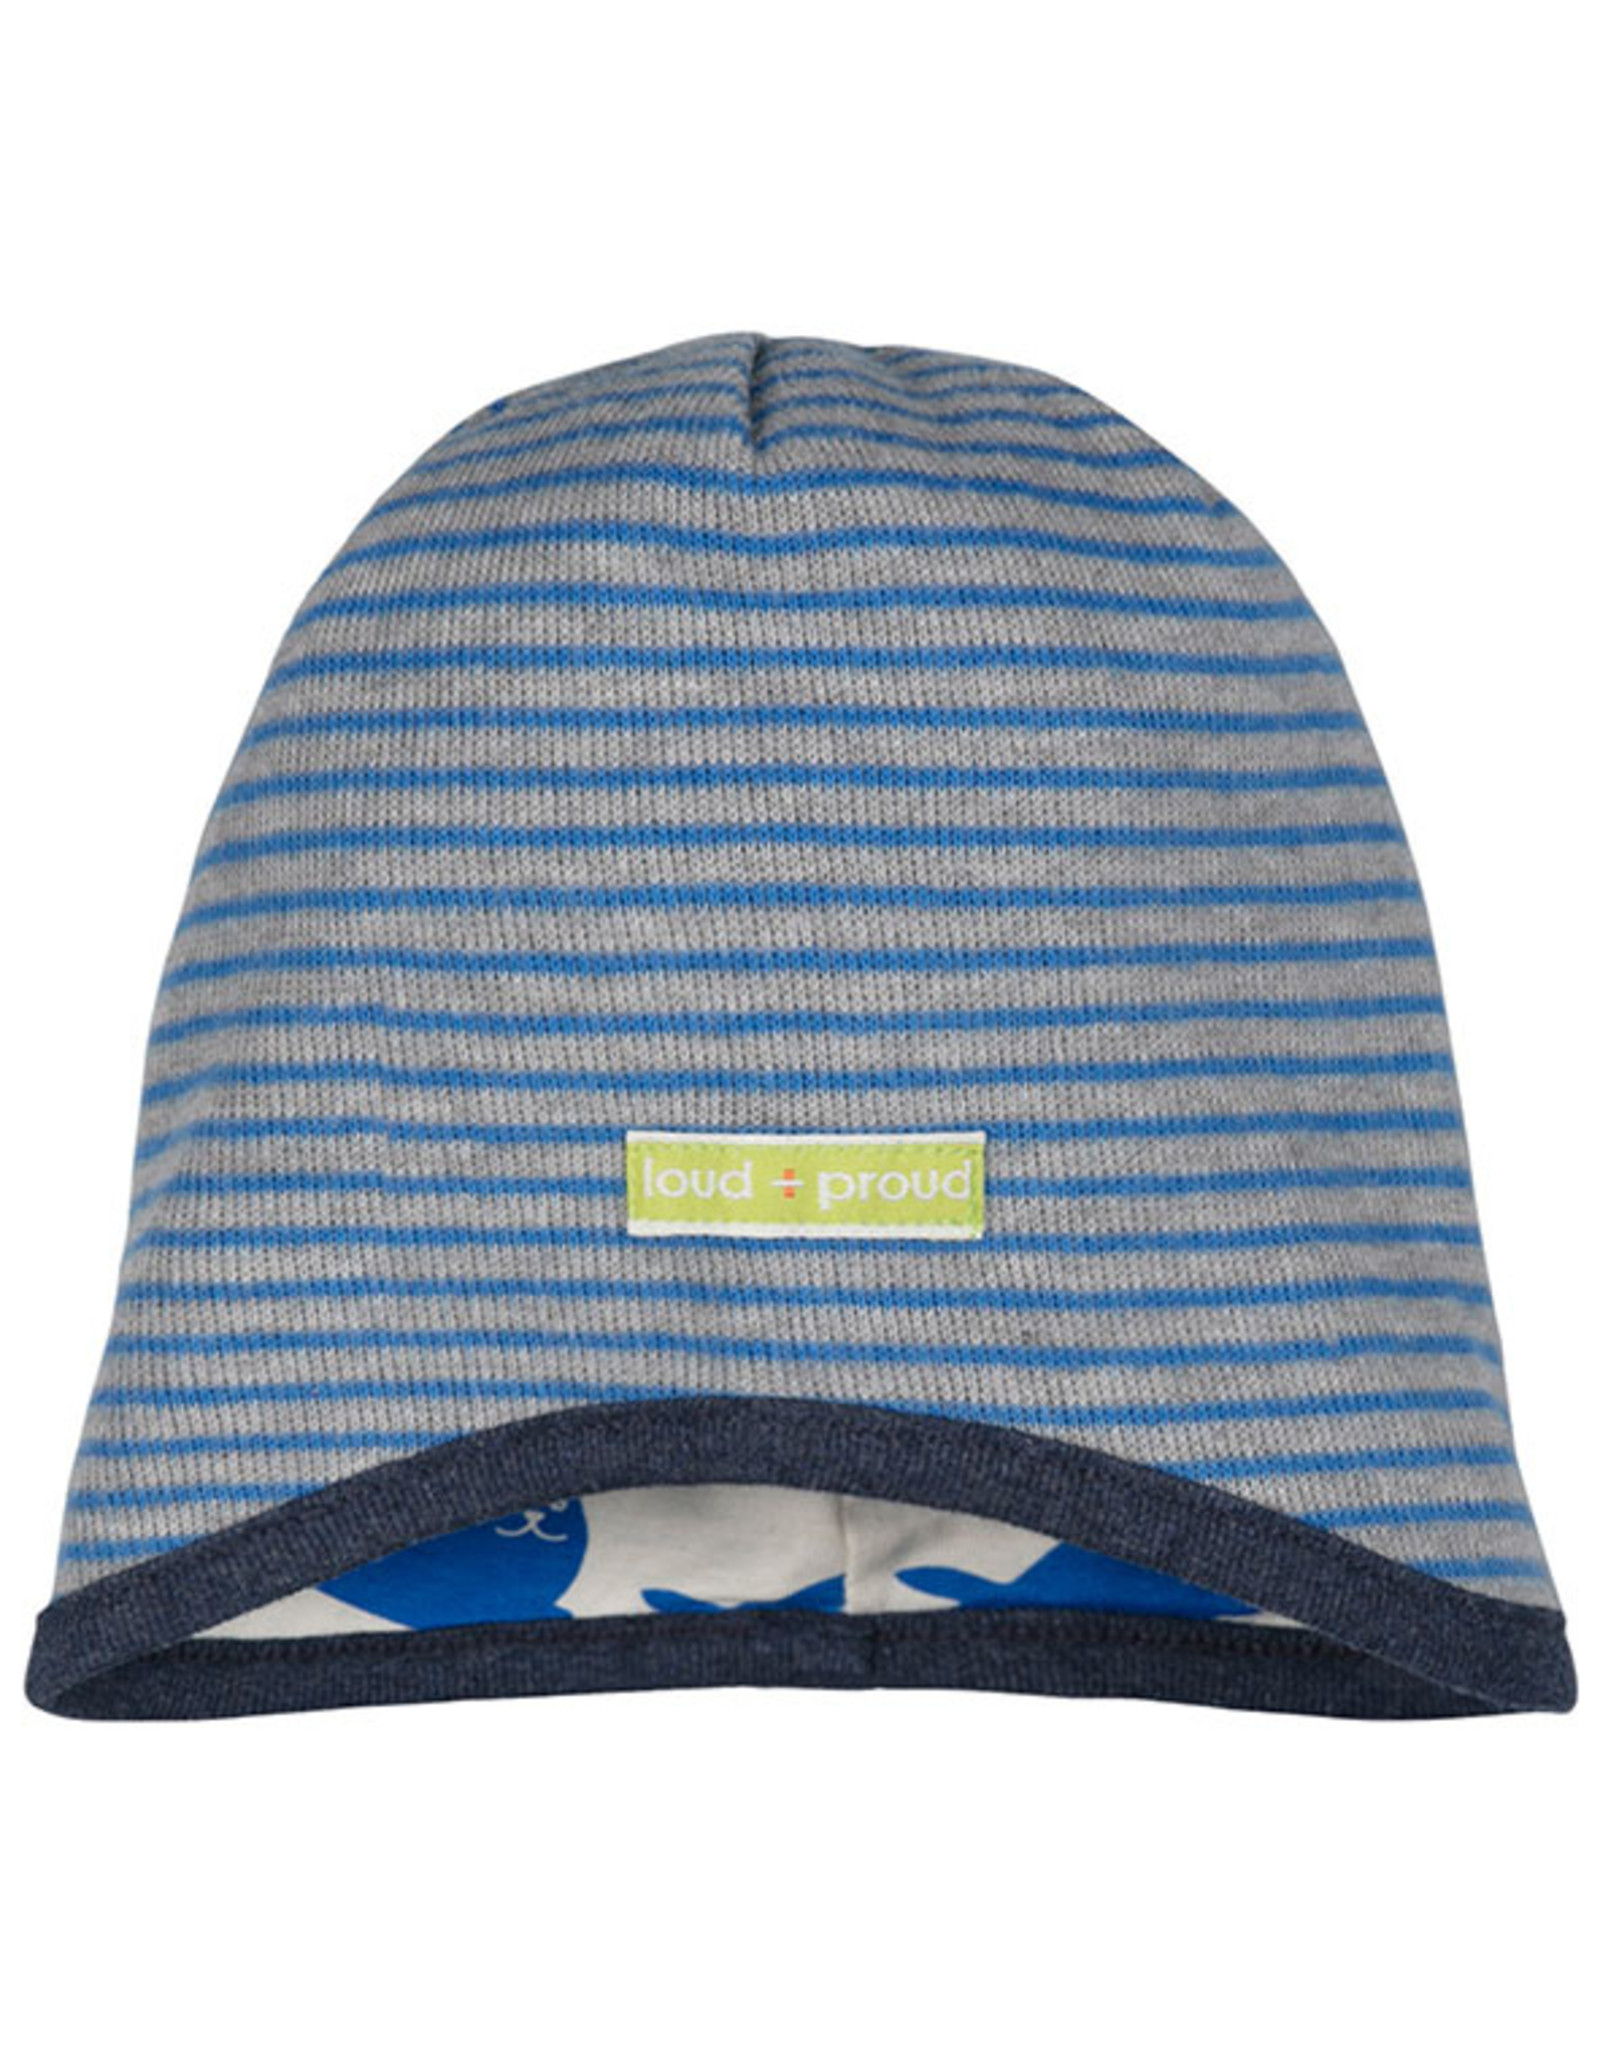 loud+proud Children's hat - grey blue with seals